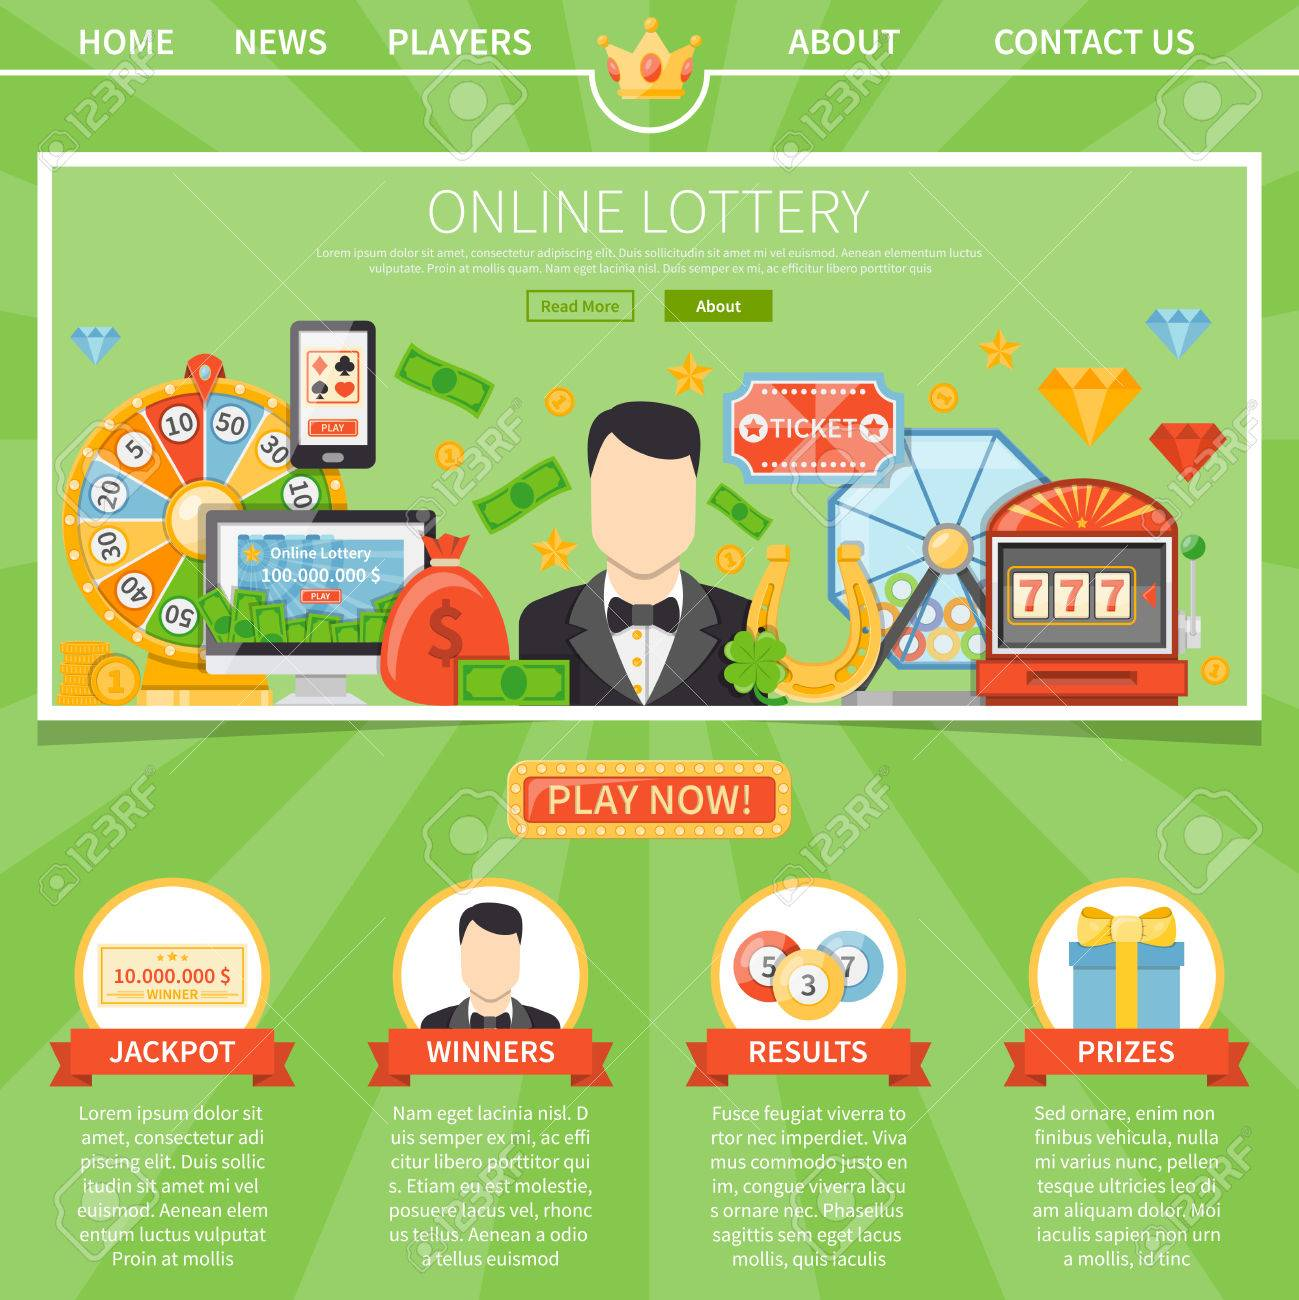 Online Lottery One Page Advertising Template For Website With ...